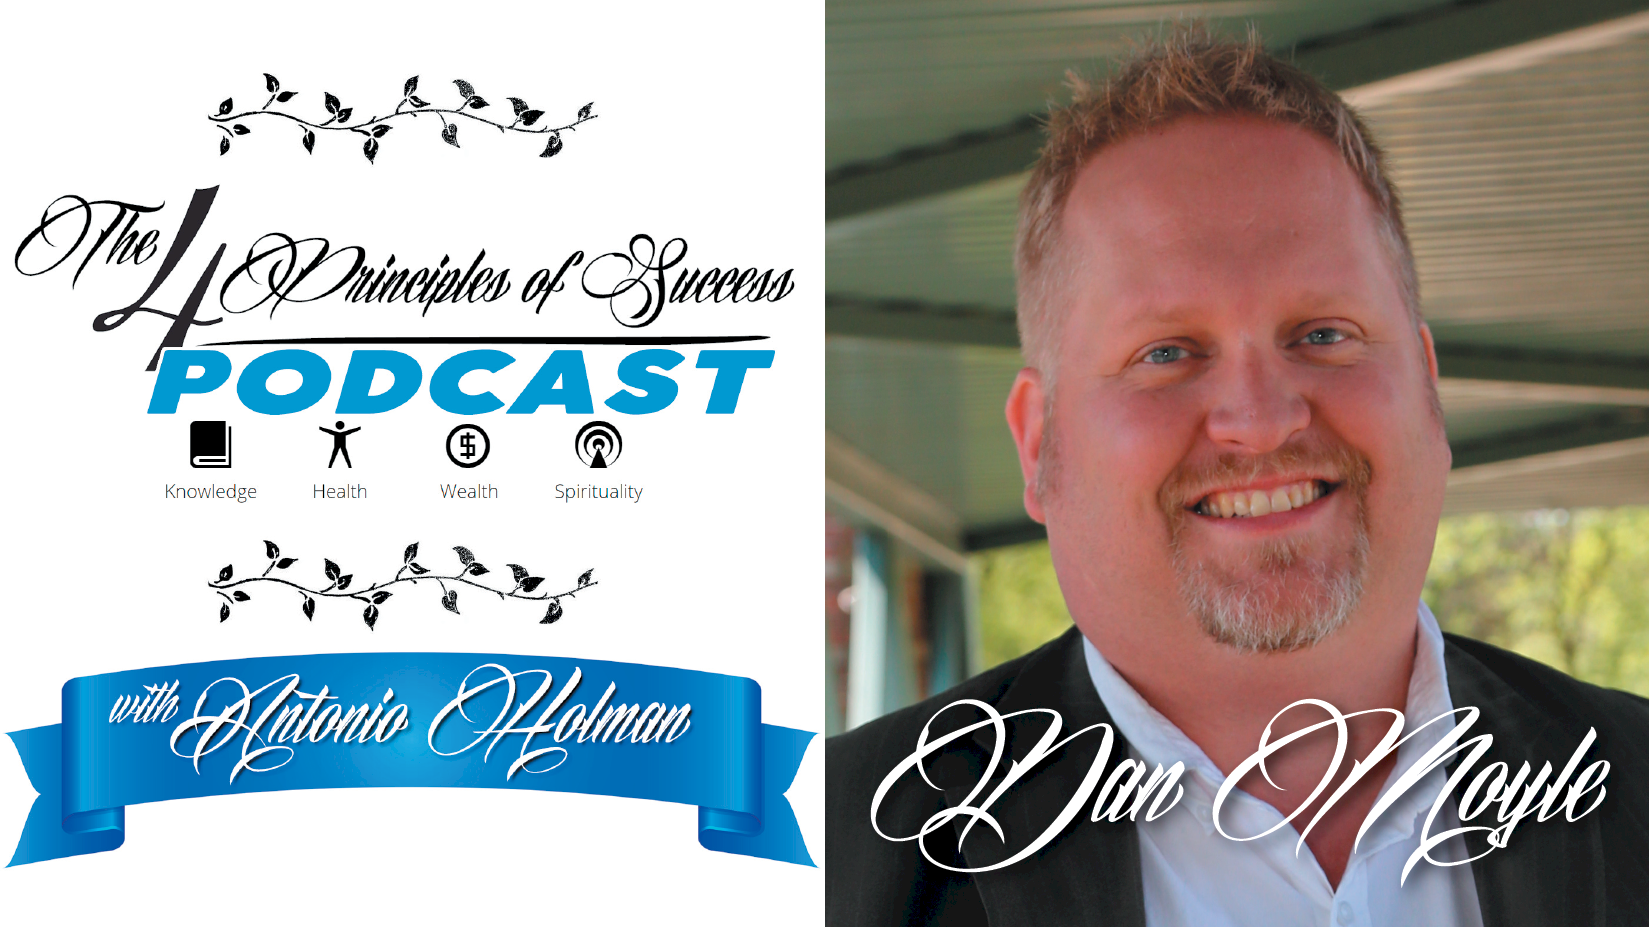 The 4 Principles of Success guest Dan Moyle